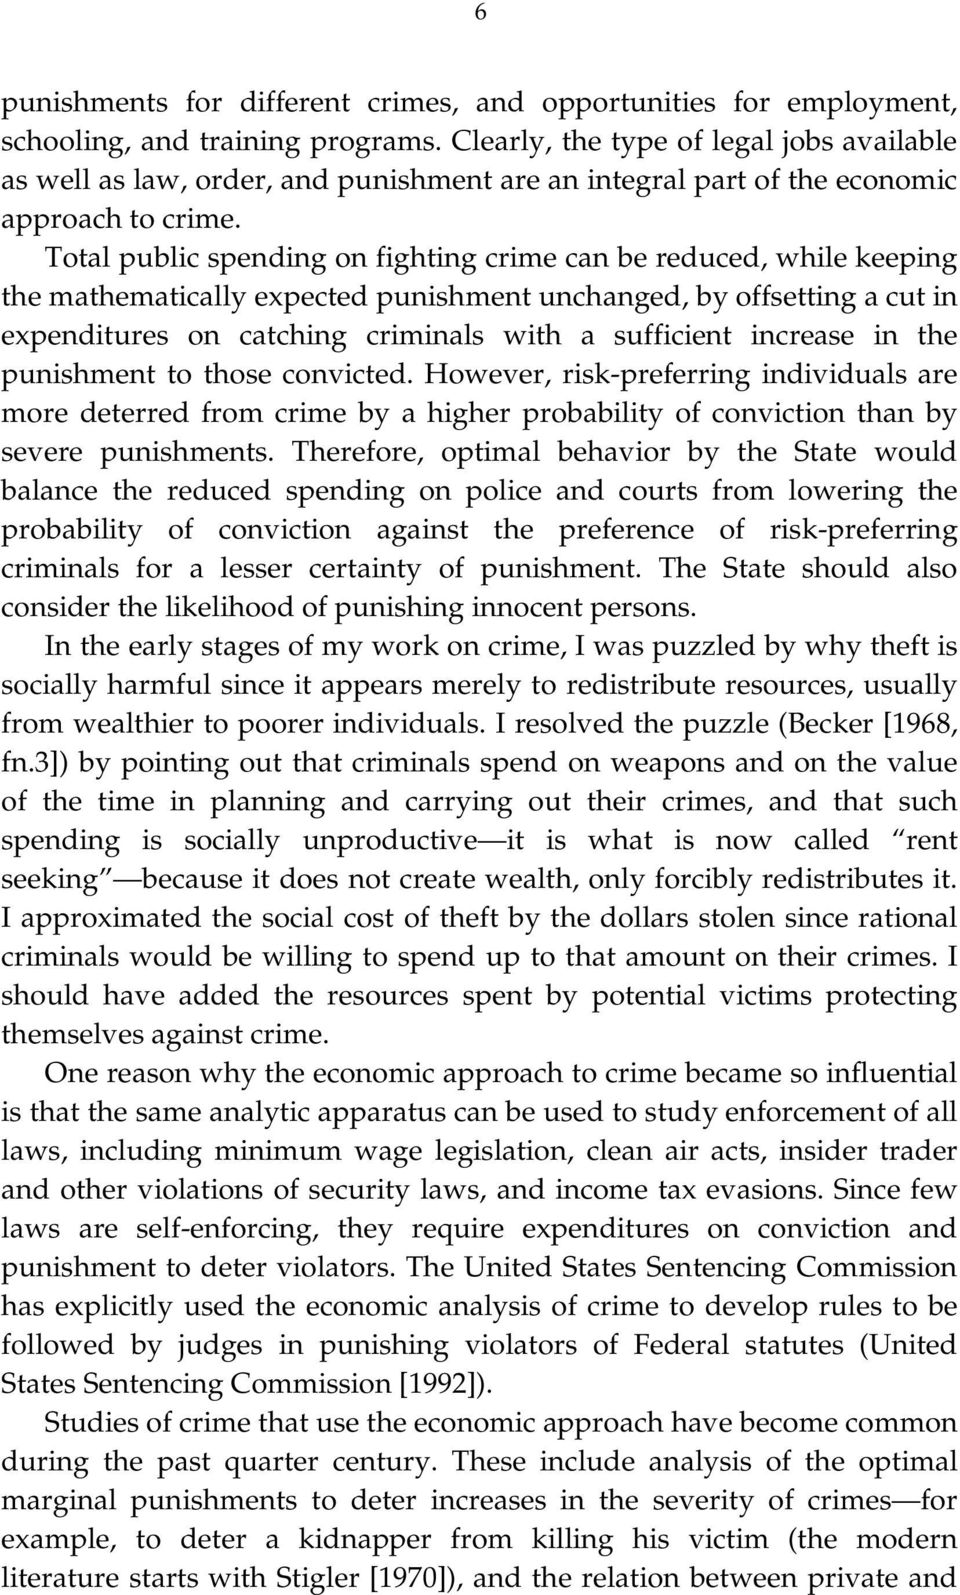 Total public spending on fighting crime can be reduced, while keeping the mathematically expected punishment unchanged, by offsetting a cut in expenditures on catching criminals with a sufficient